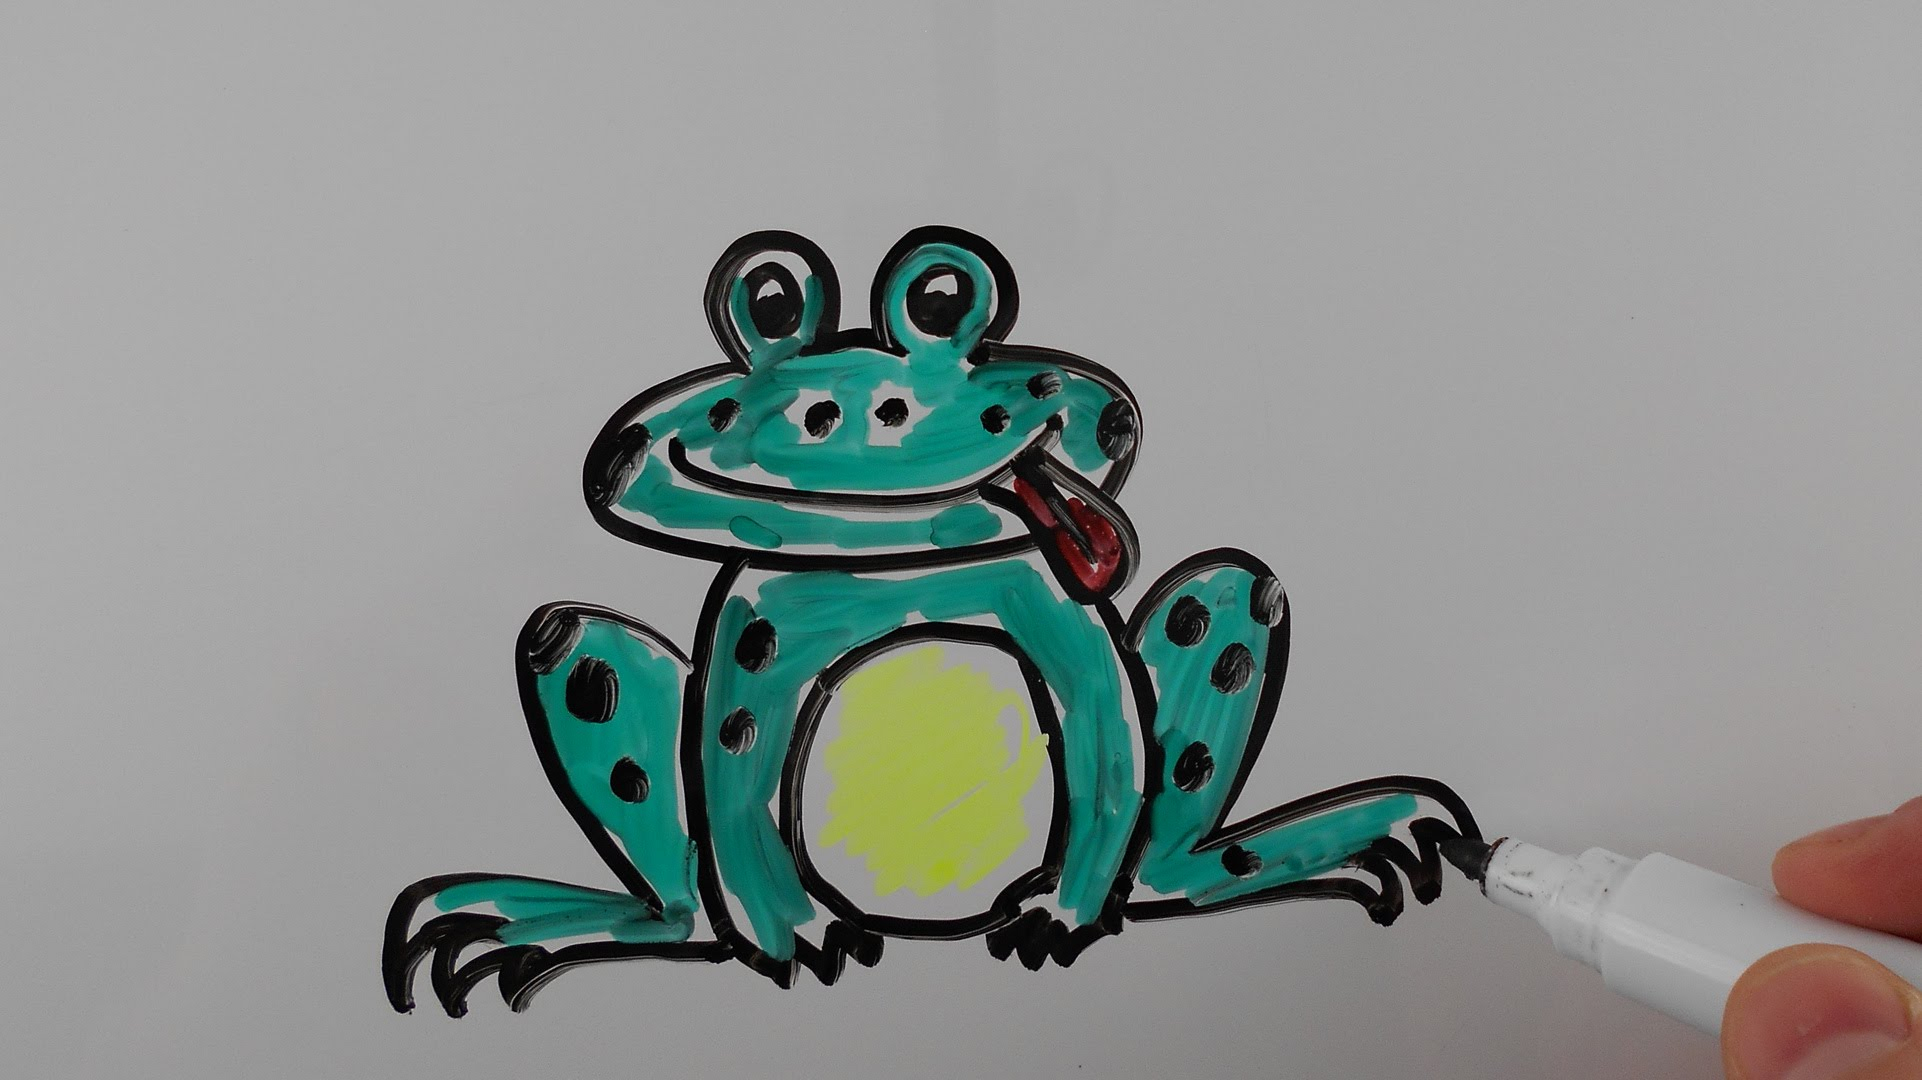 1922x1080 Easy Whiteboard Drawings Flowers How To Draw Frog Drawing On